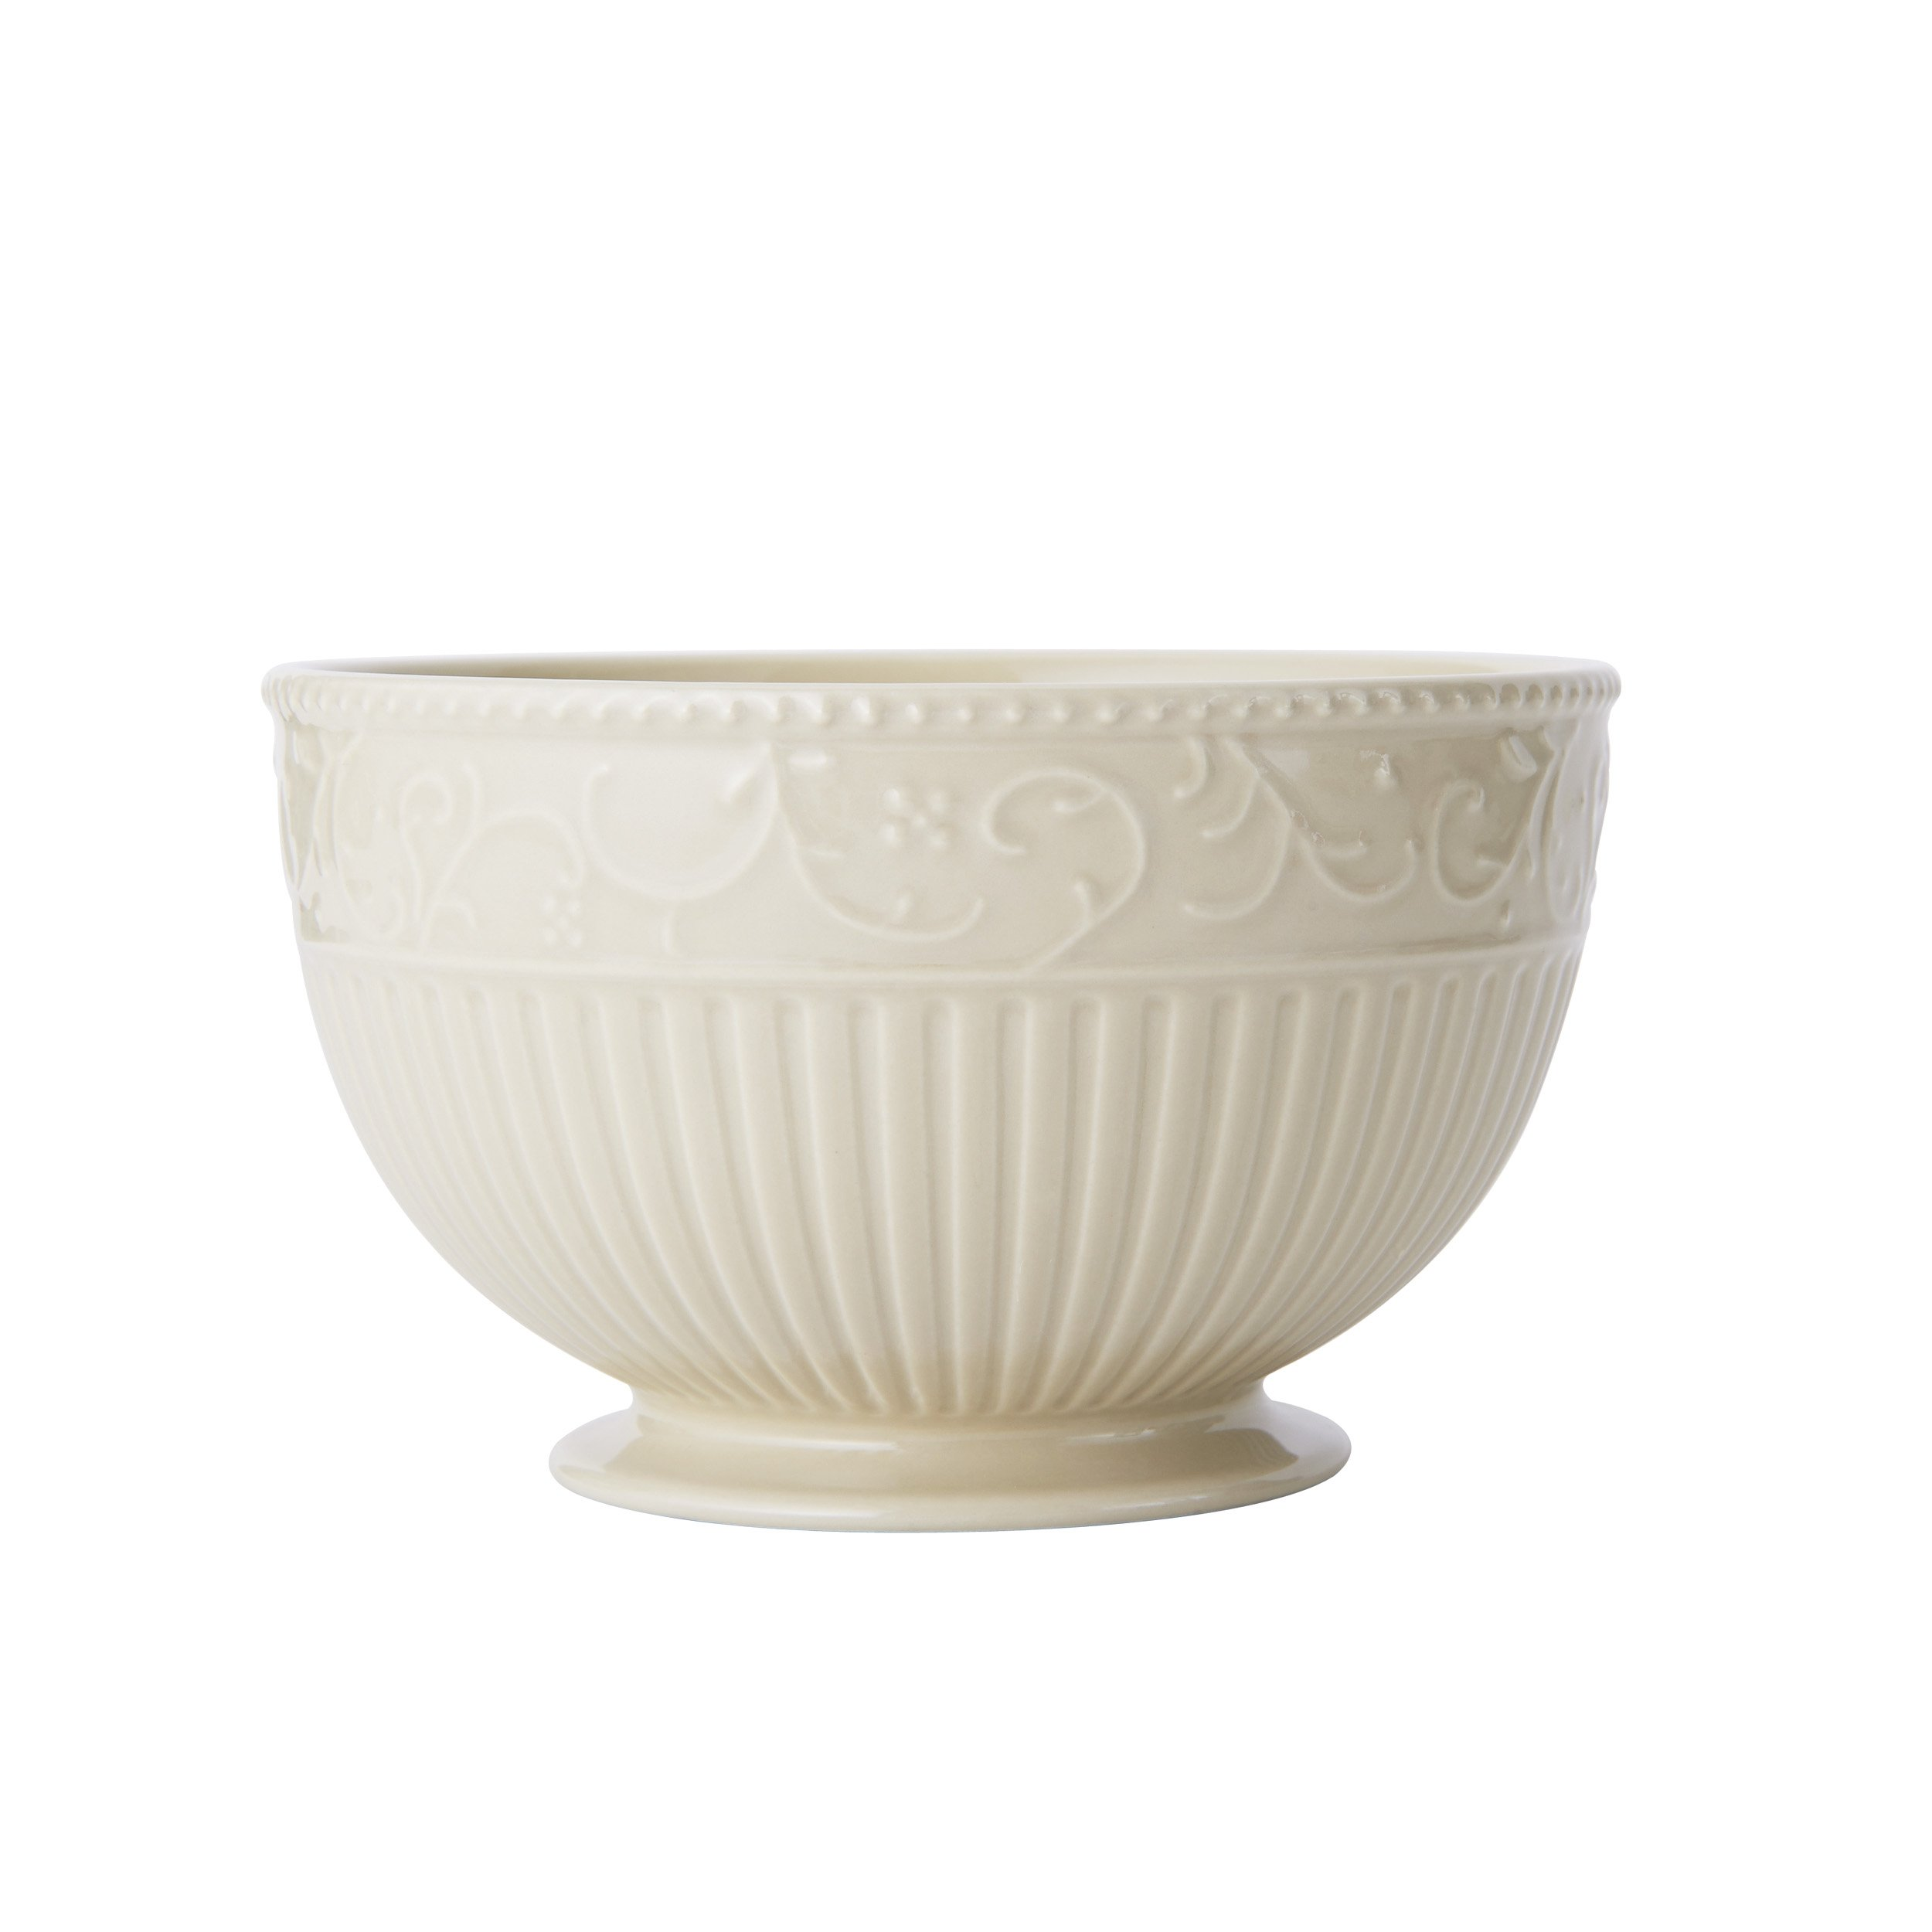 Mikasa Italian Countryside Accents Footed Soup/Cereal Bowl, Scroll Beige